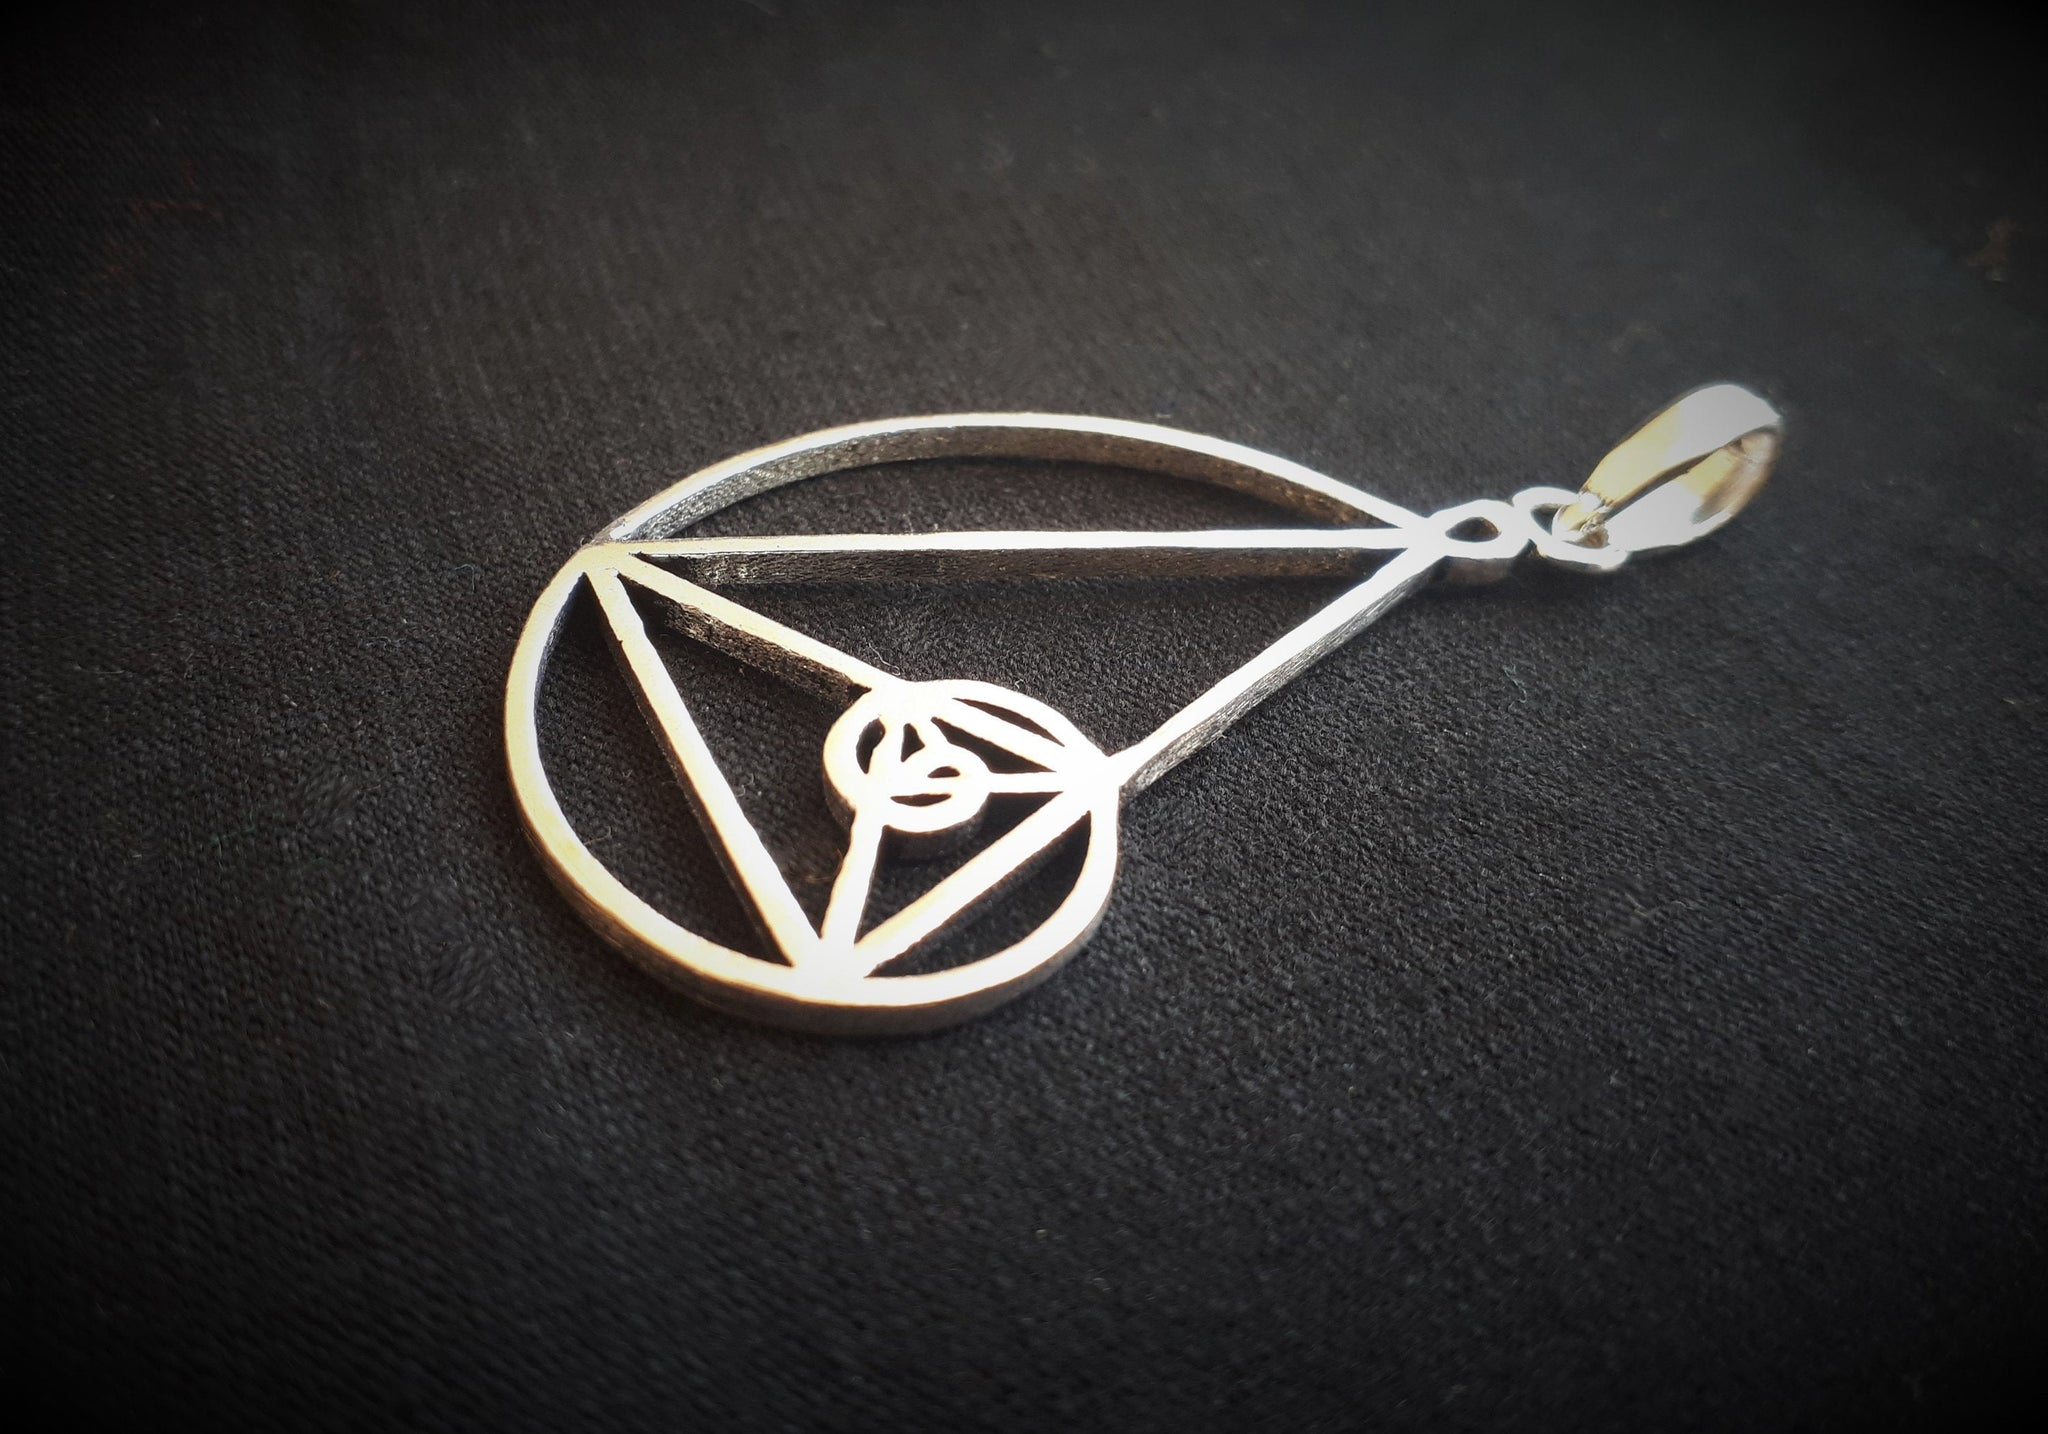 FIBONACCI Silver Pendant - Silver Plated Necklace, Golden Spiral Pendant, Tribal Necklace, Psy Gypsy, Boho, Sacred Geometry Necklace